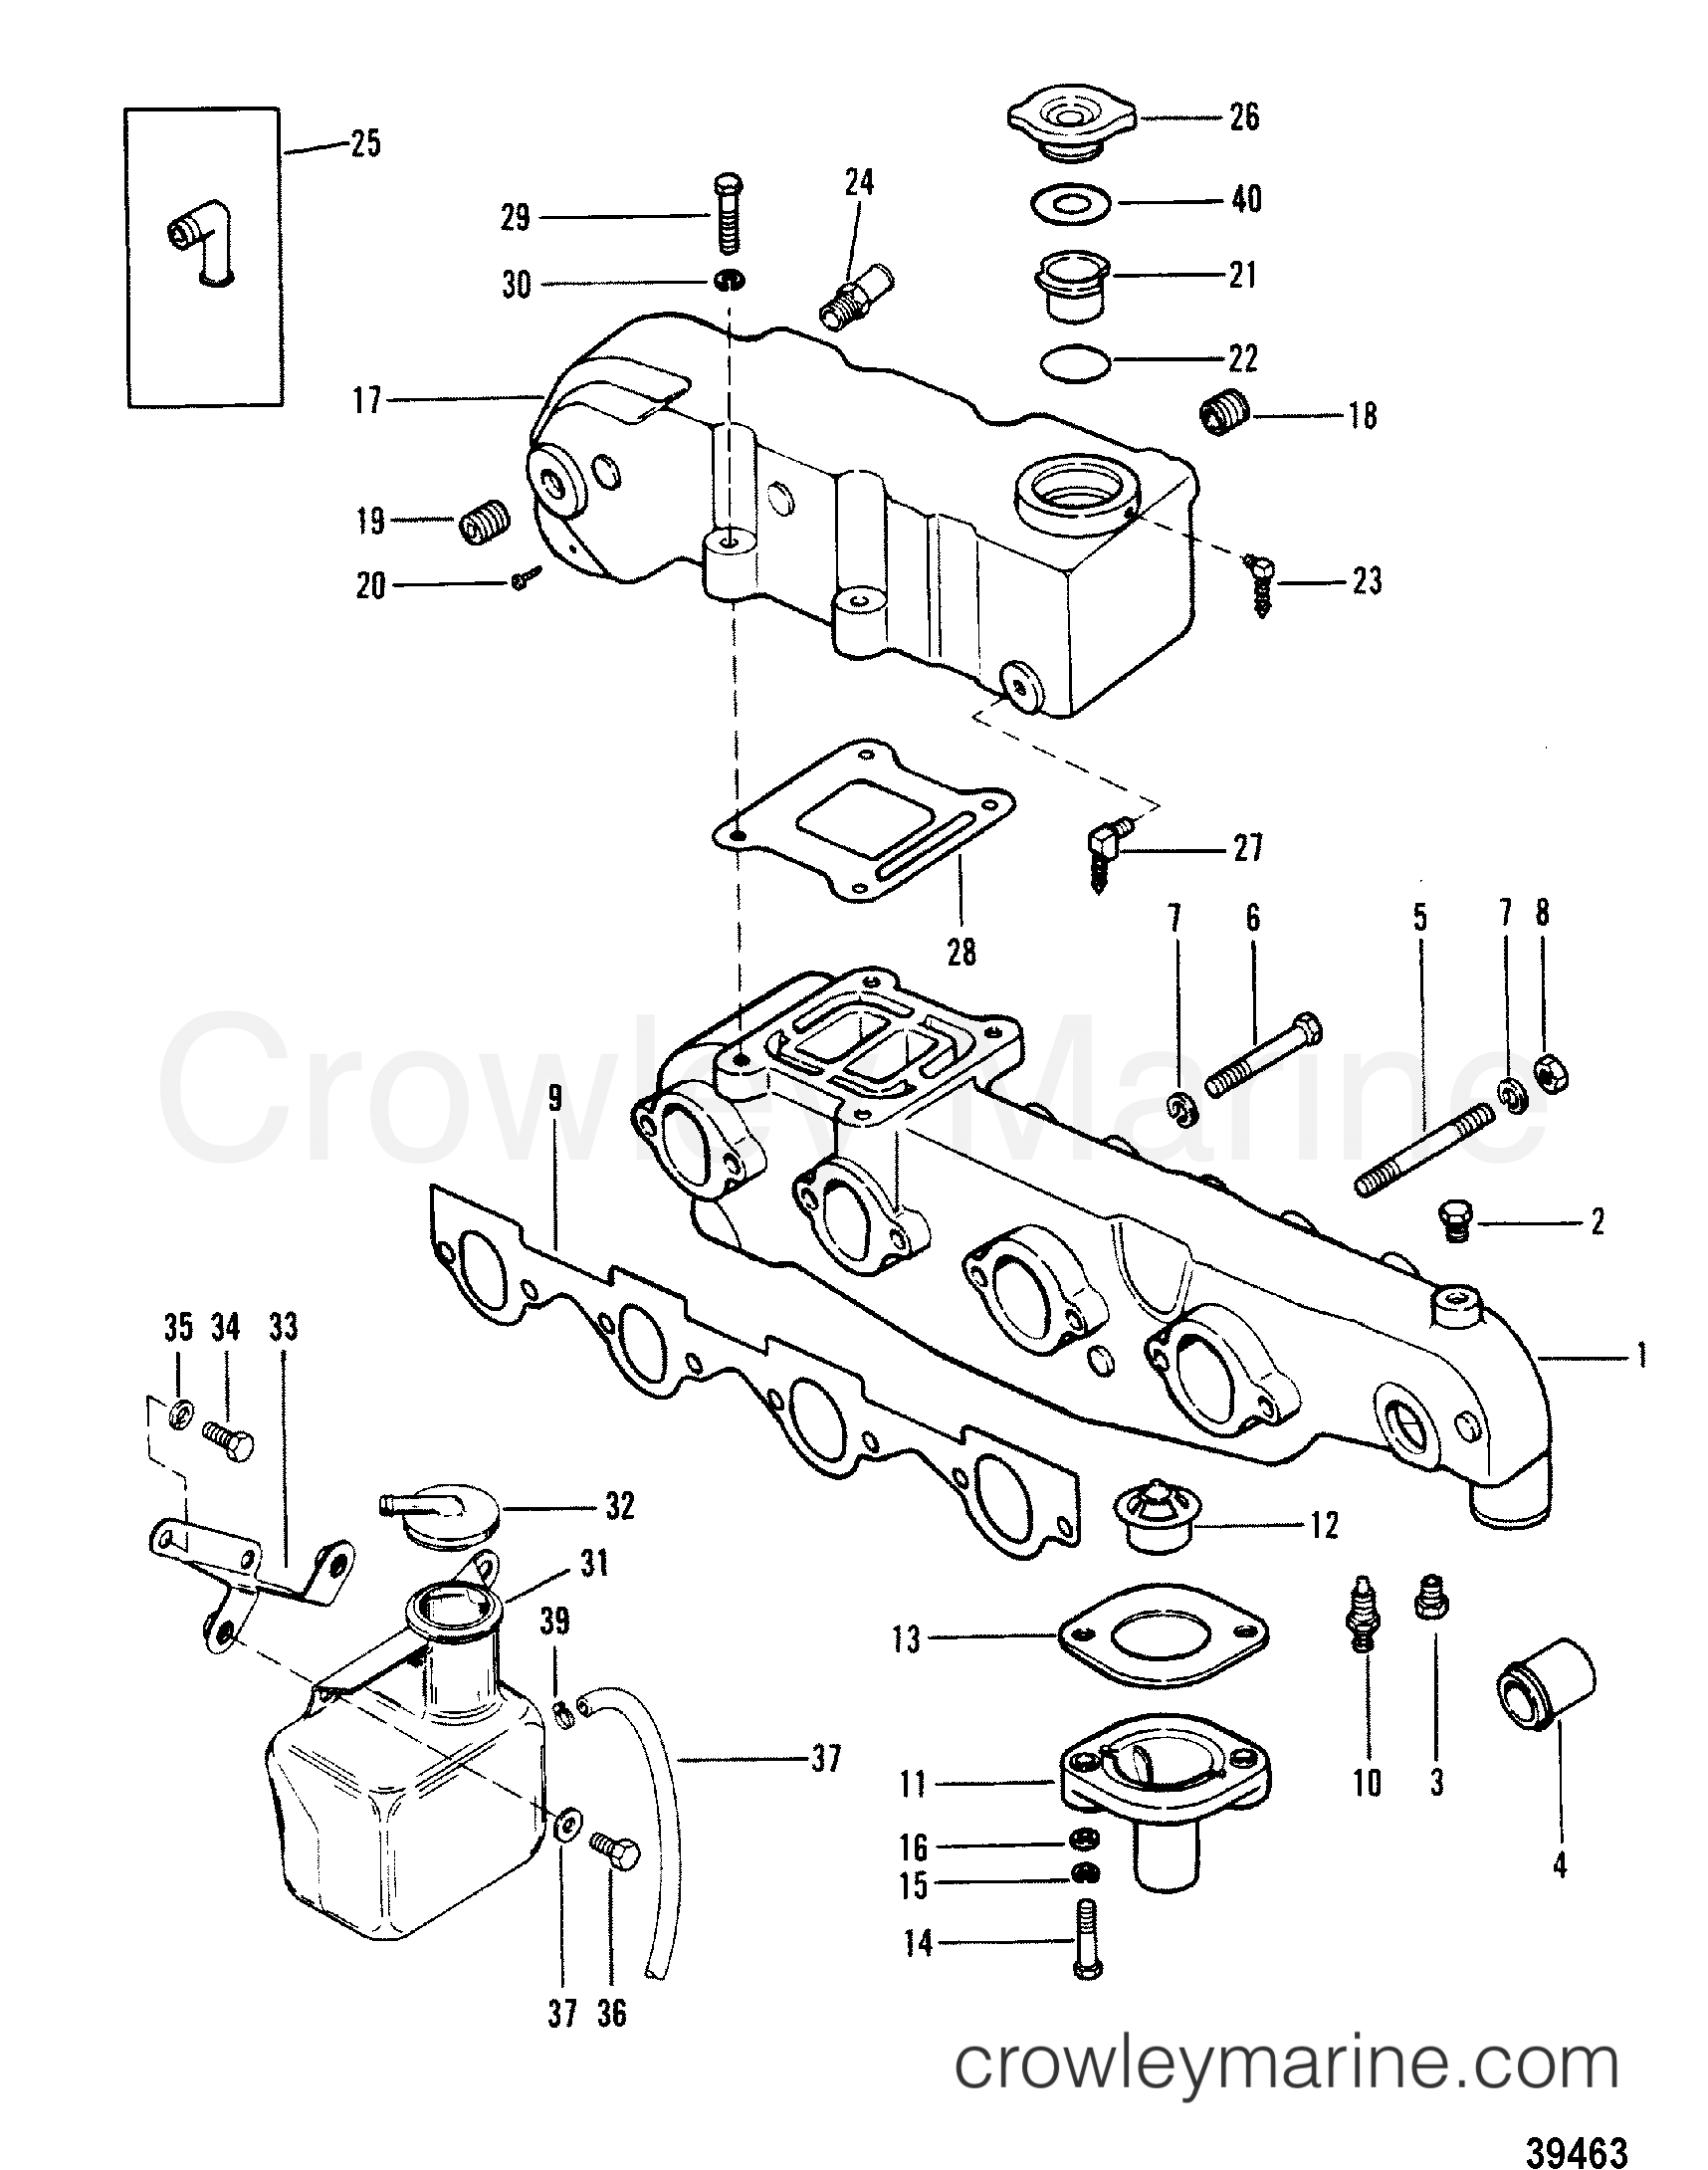 Exhaust Manifold And Exhaust Elbow Cast Iron